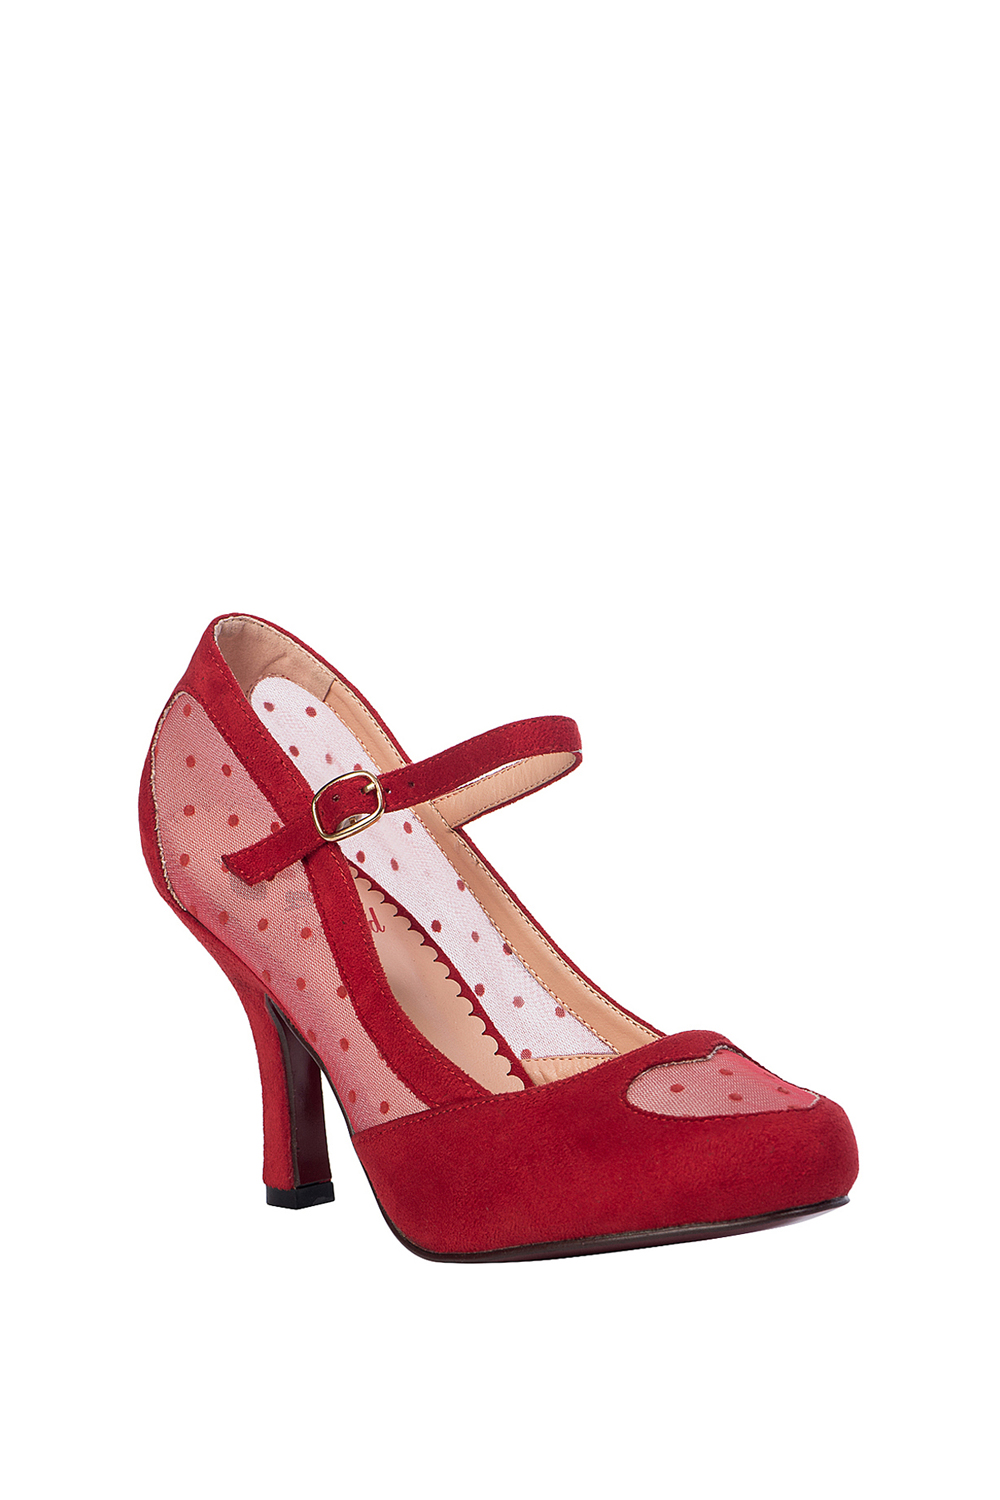 Banned Retro 50s Elegant Spots Pumps In Red